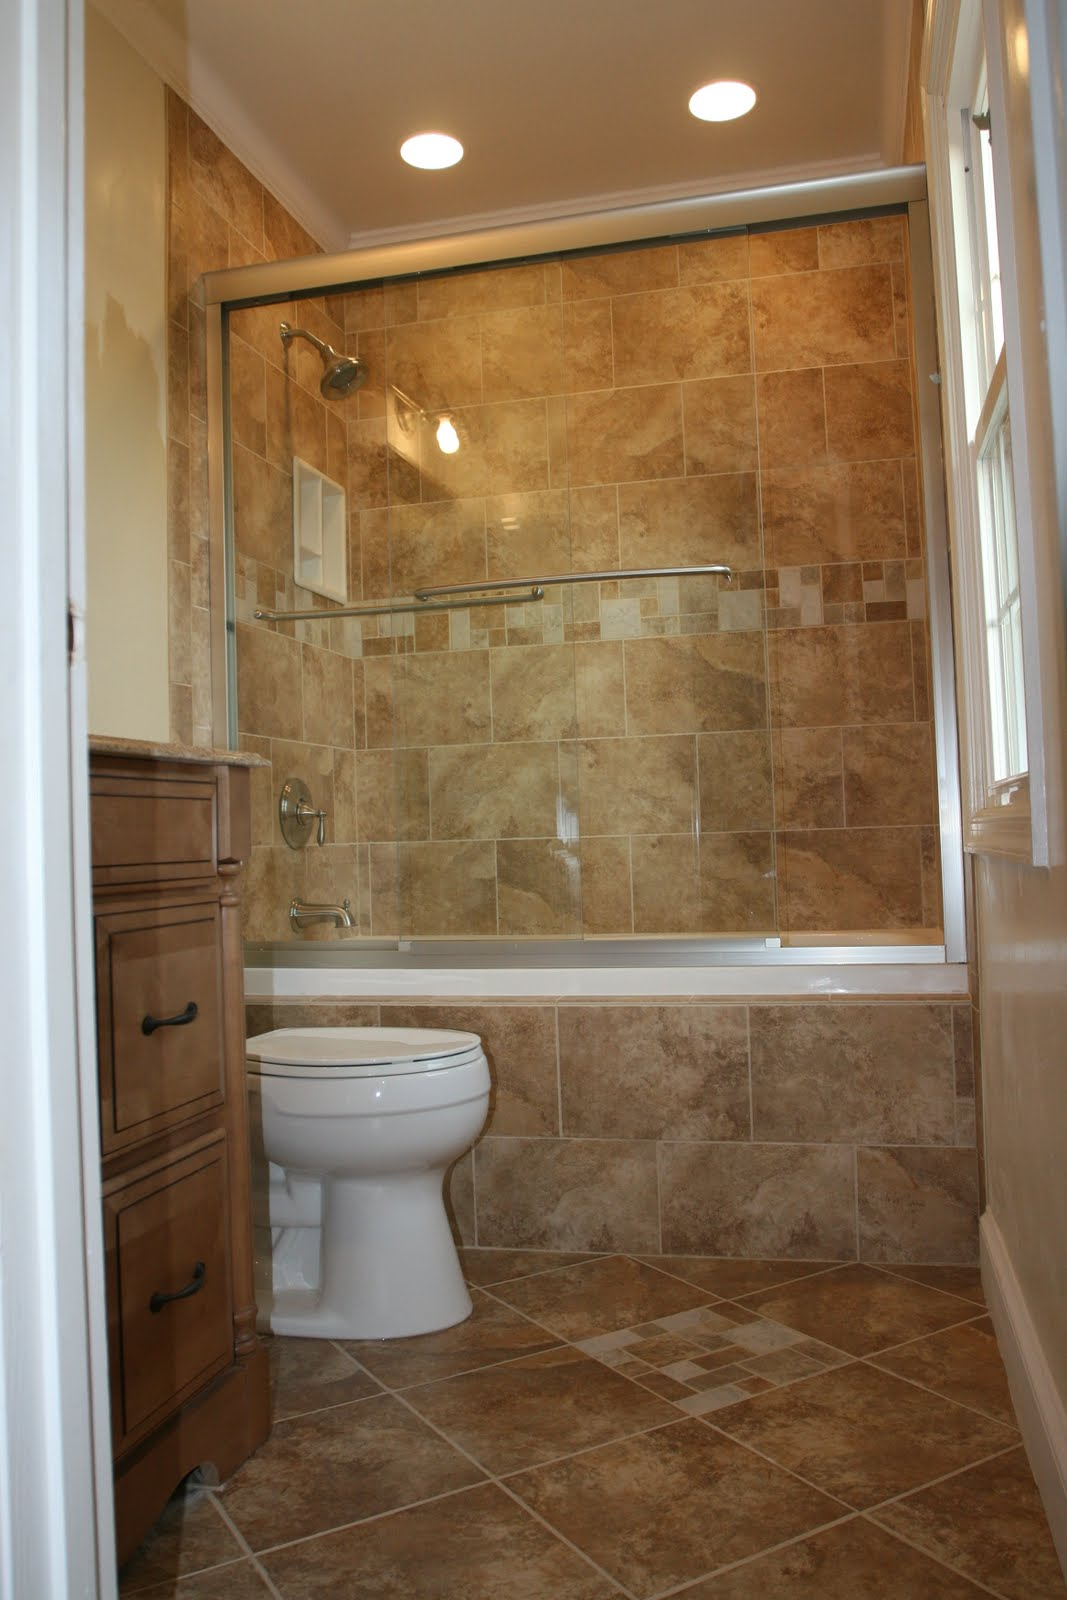 Small Bathroom Remodel Ideas - MidCityEast on Small Bathroom Renovation Ideas  id=41060